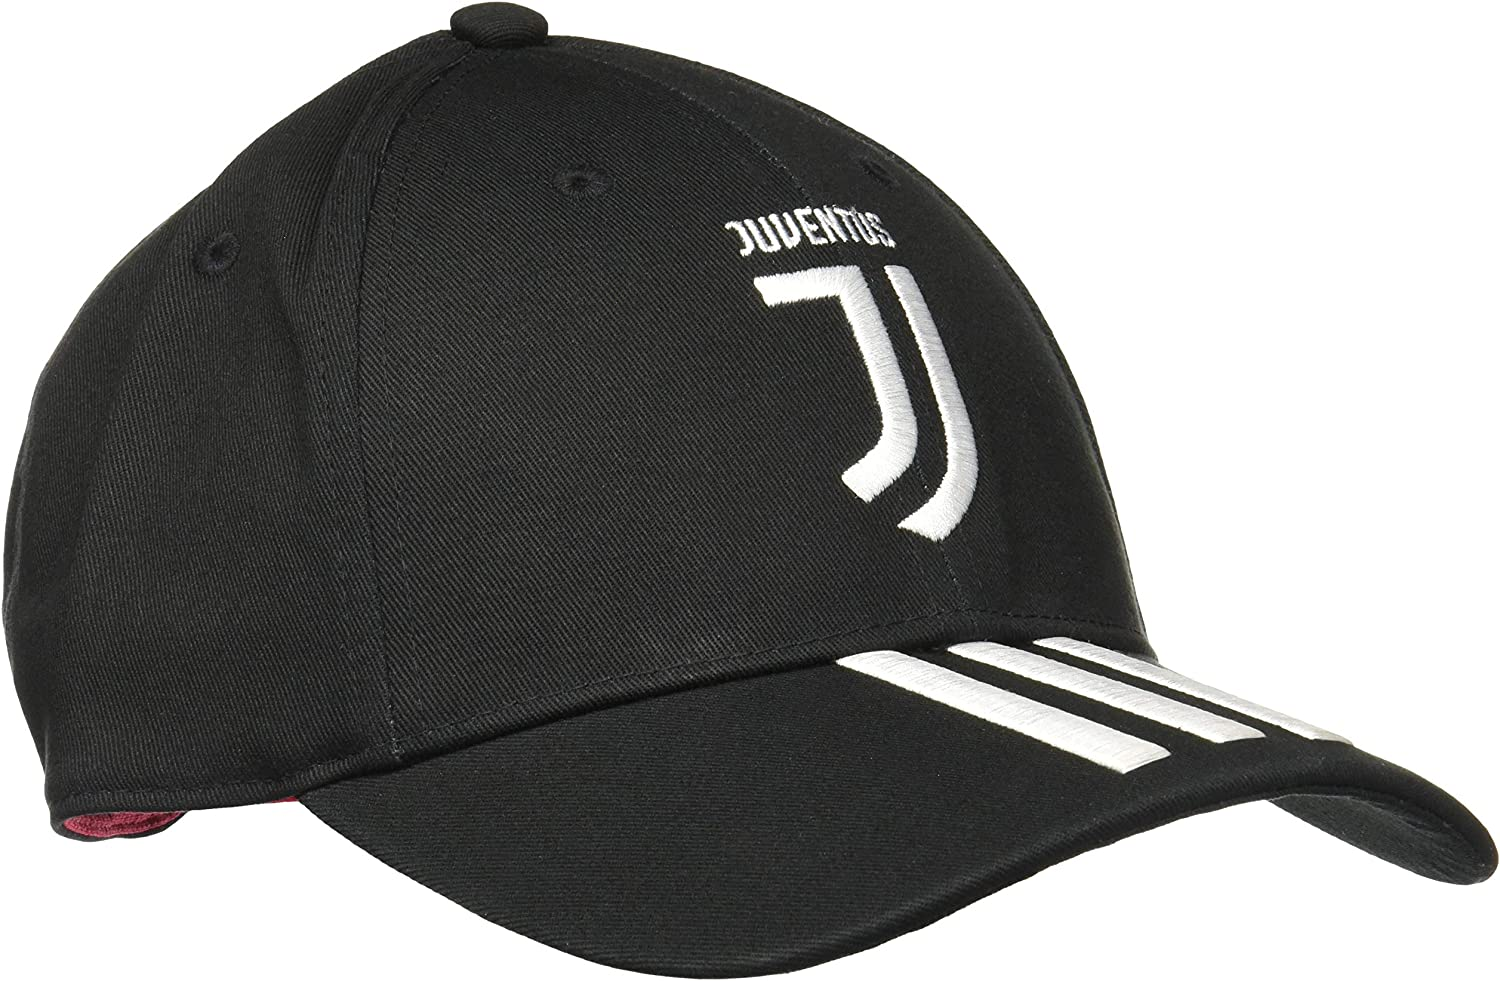 adidas DY7527 Hat, Unisex Adulto, Black/White/Active Pink, Talla ...